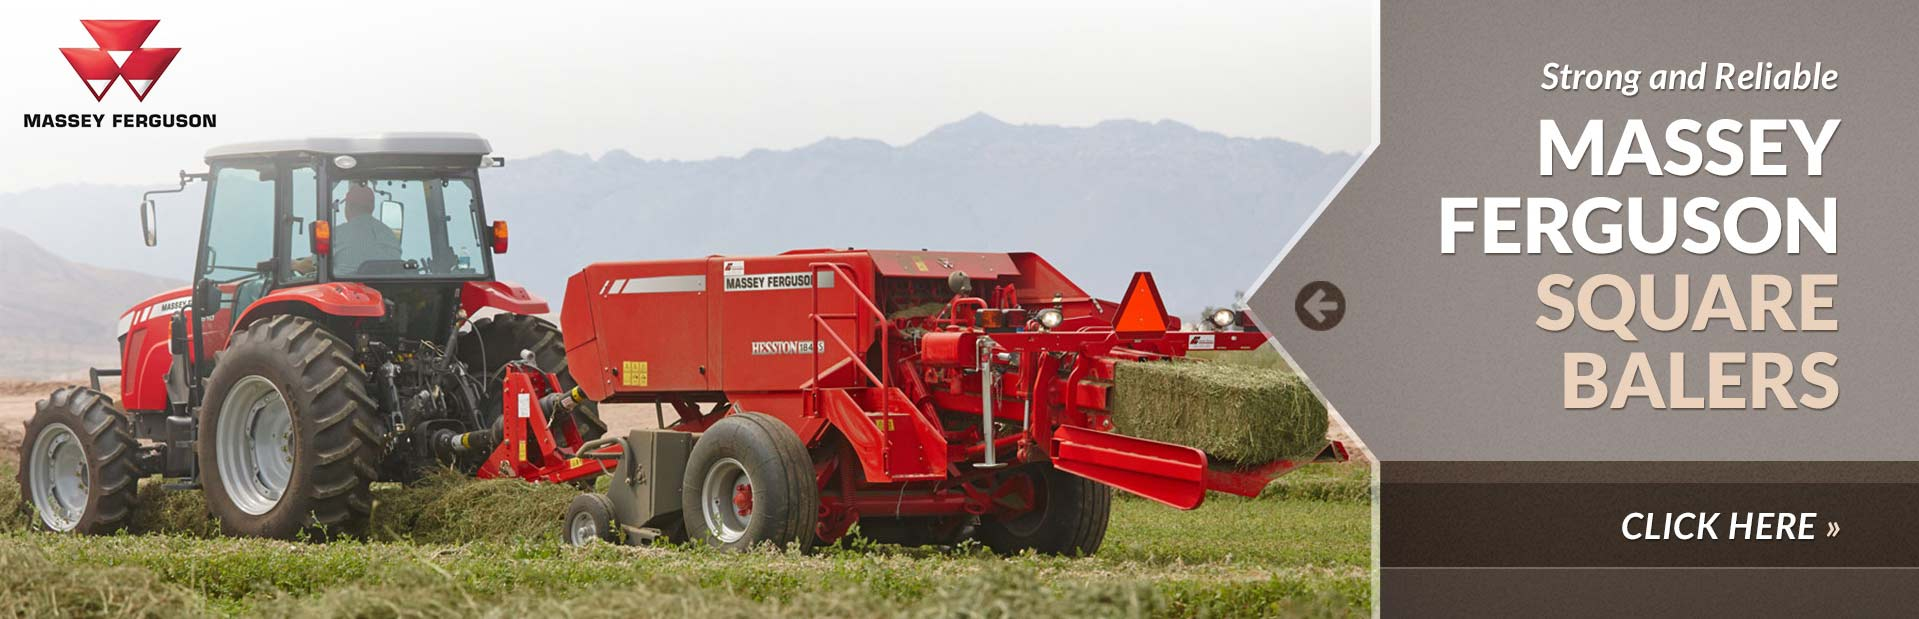 Massey Ferguson square balers are strong and reliable. Click here to view our selection.